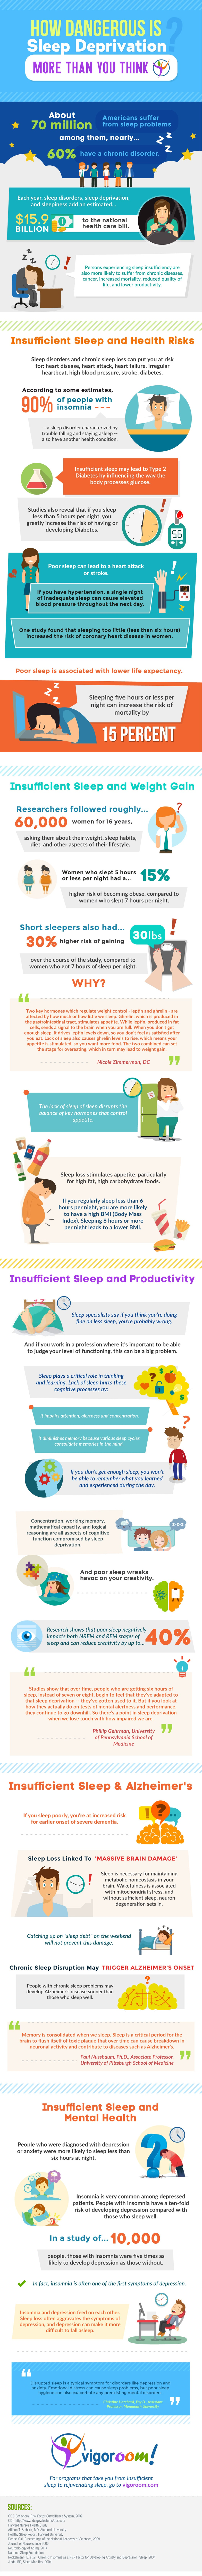 Dangerous of Sleep Deprivation [Infographic]